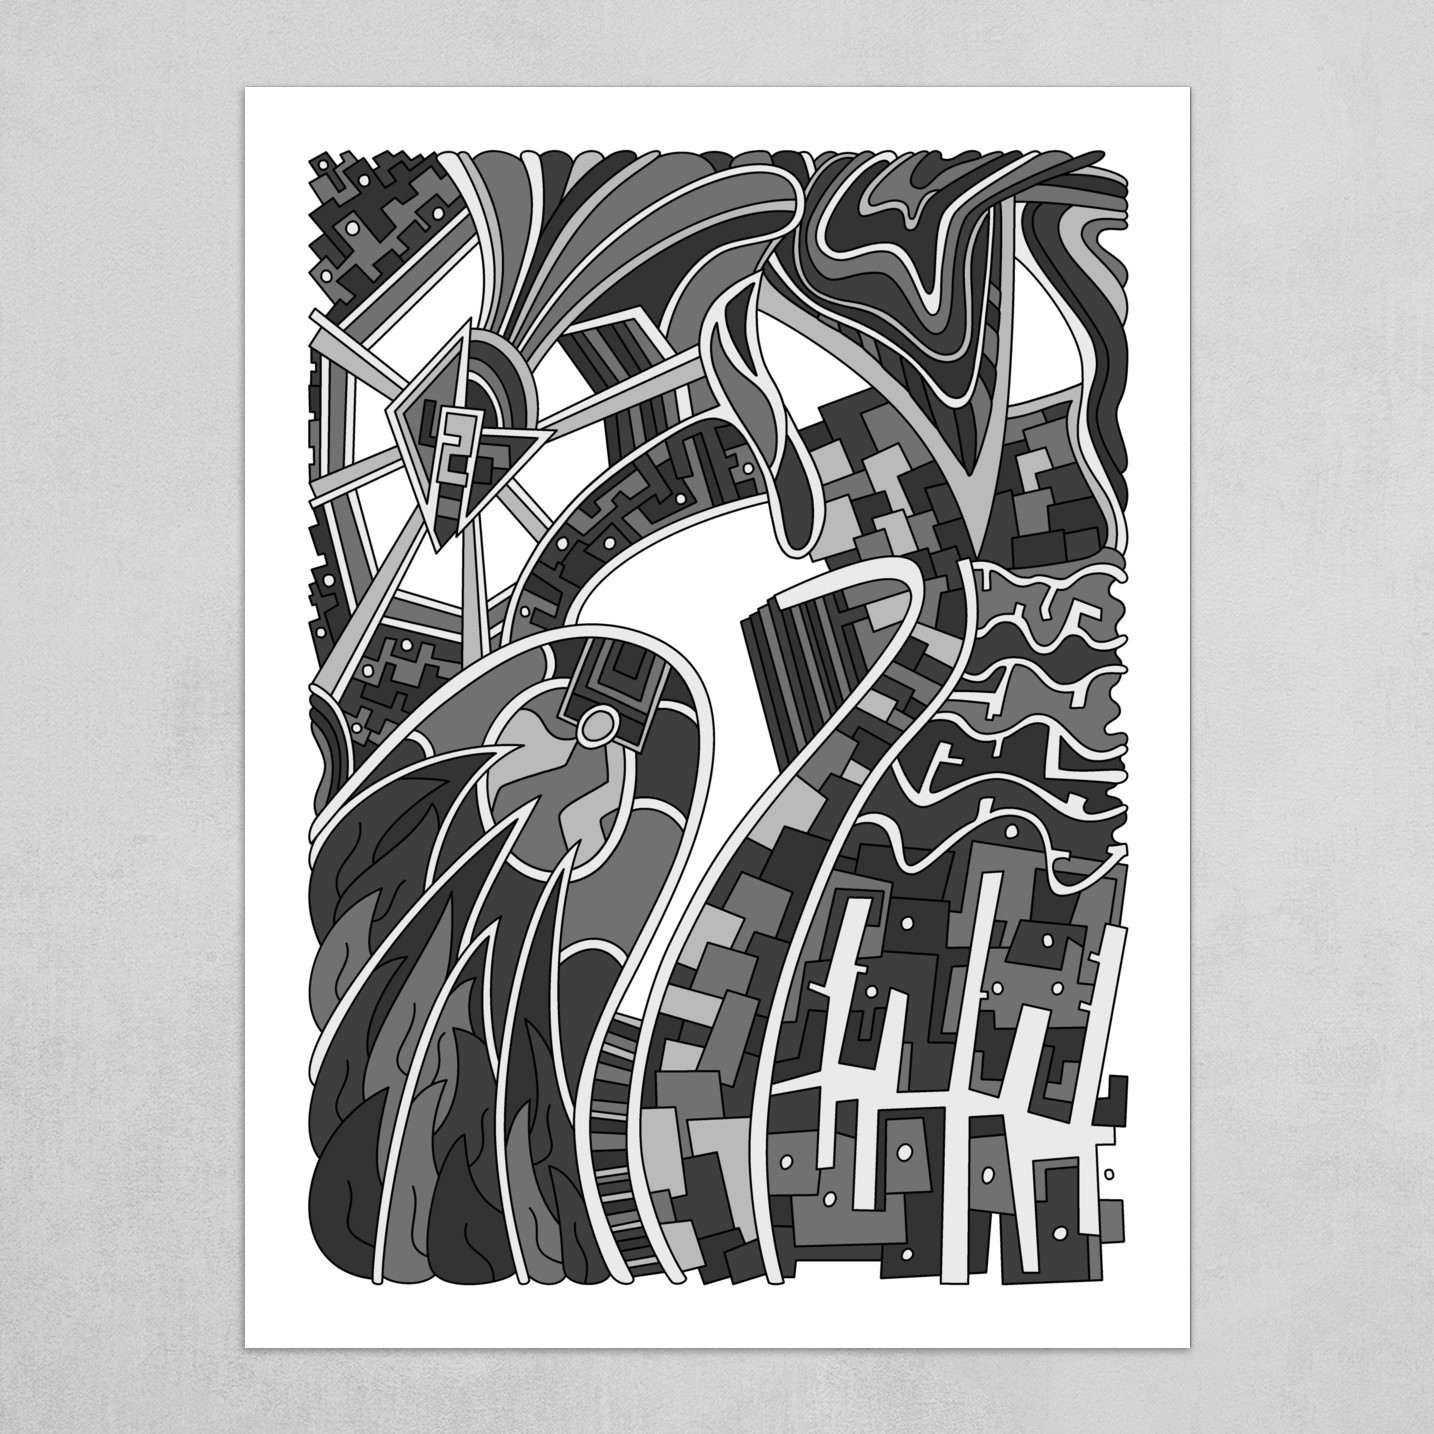 Wandering Abstract Line Art 42: Grayscale